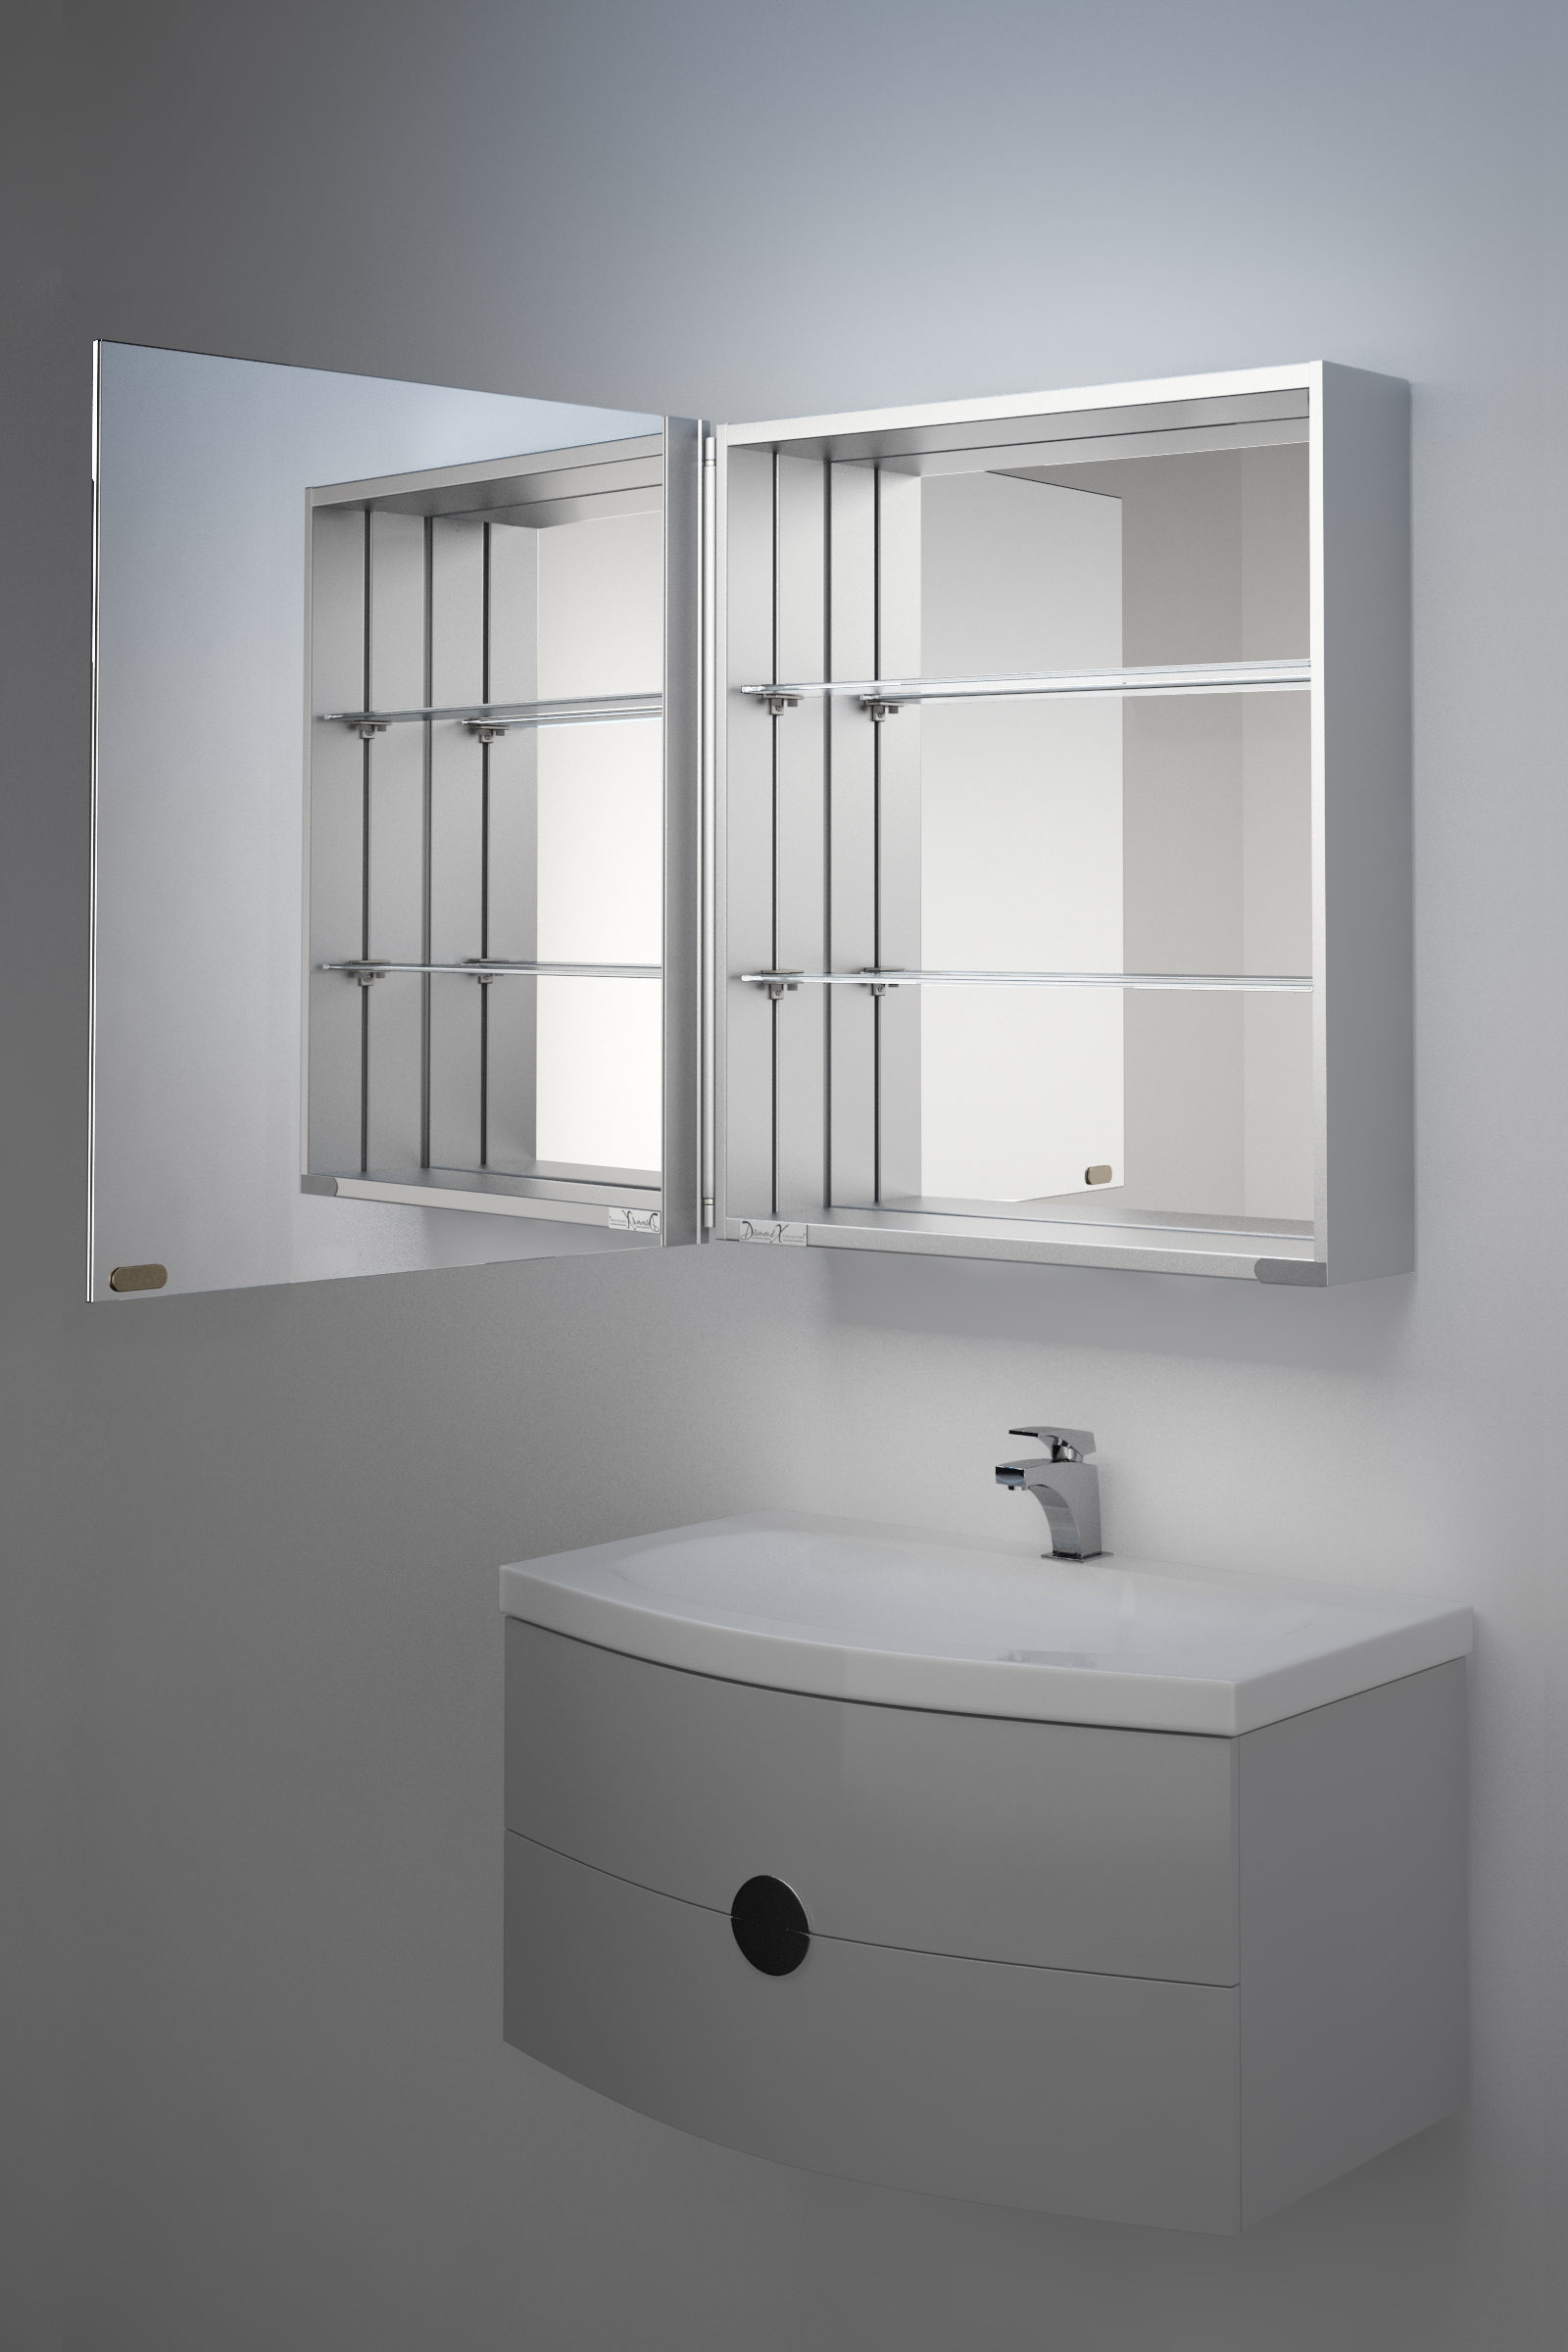 cabinets see more iris non illuminated bathroom mirror cabinet k